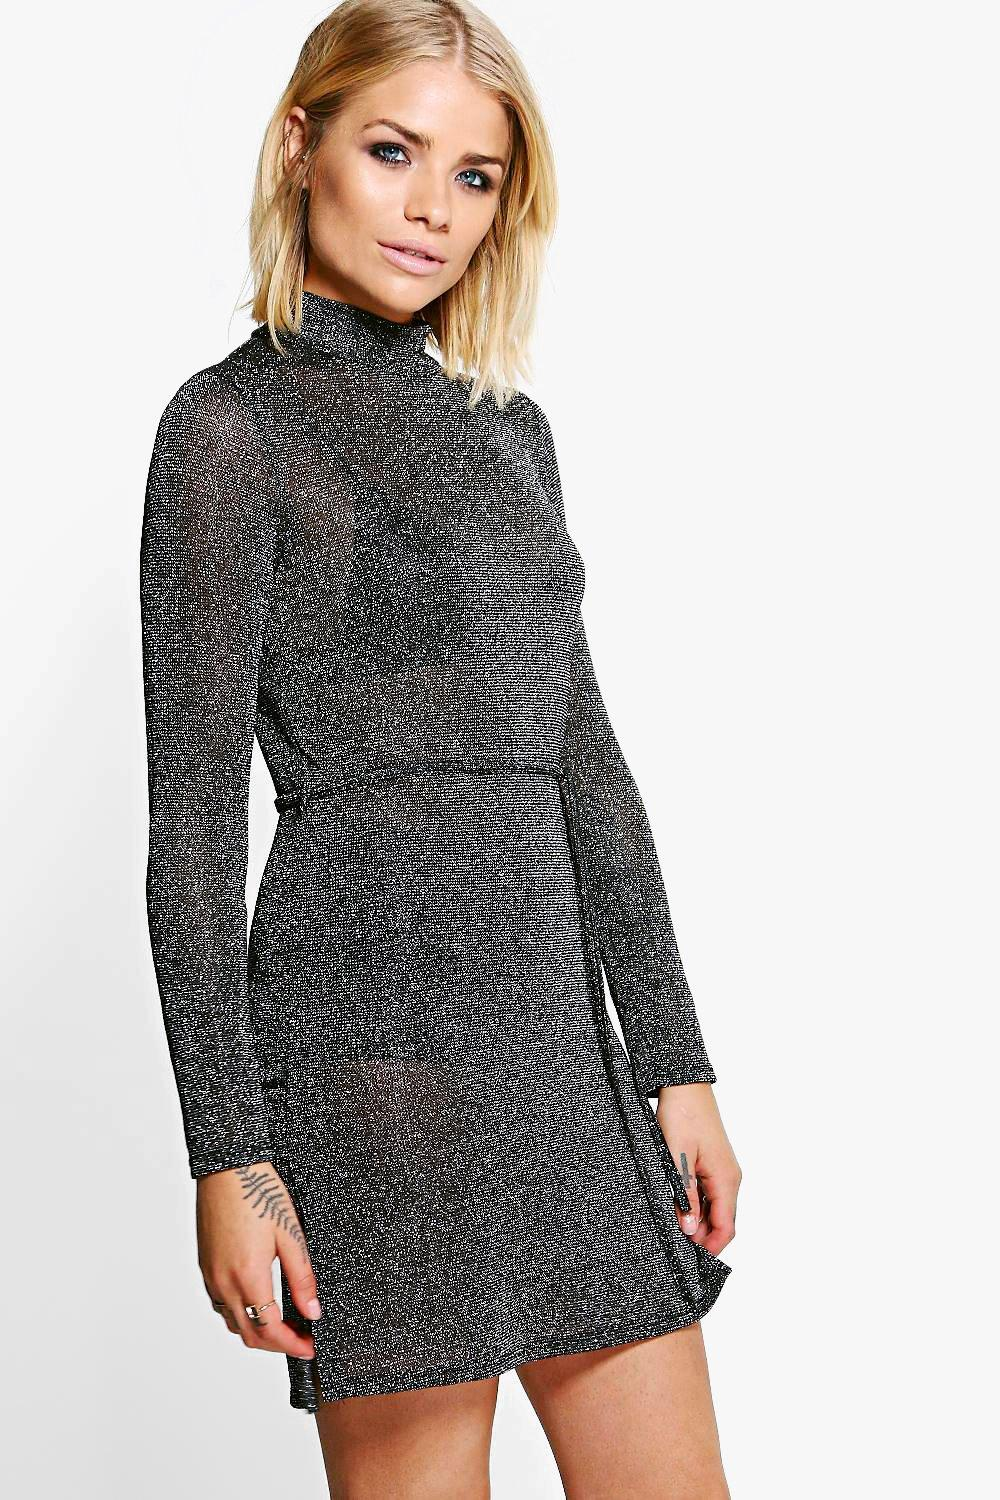 Frieda High Neck Knitted Dress